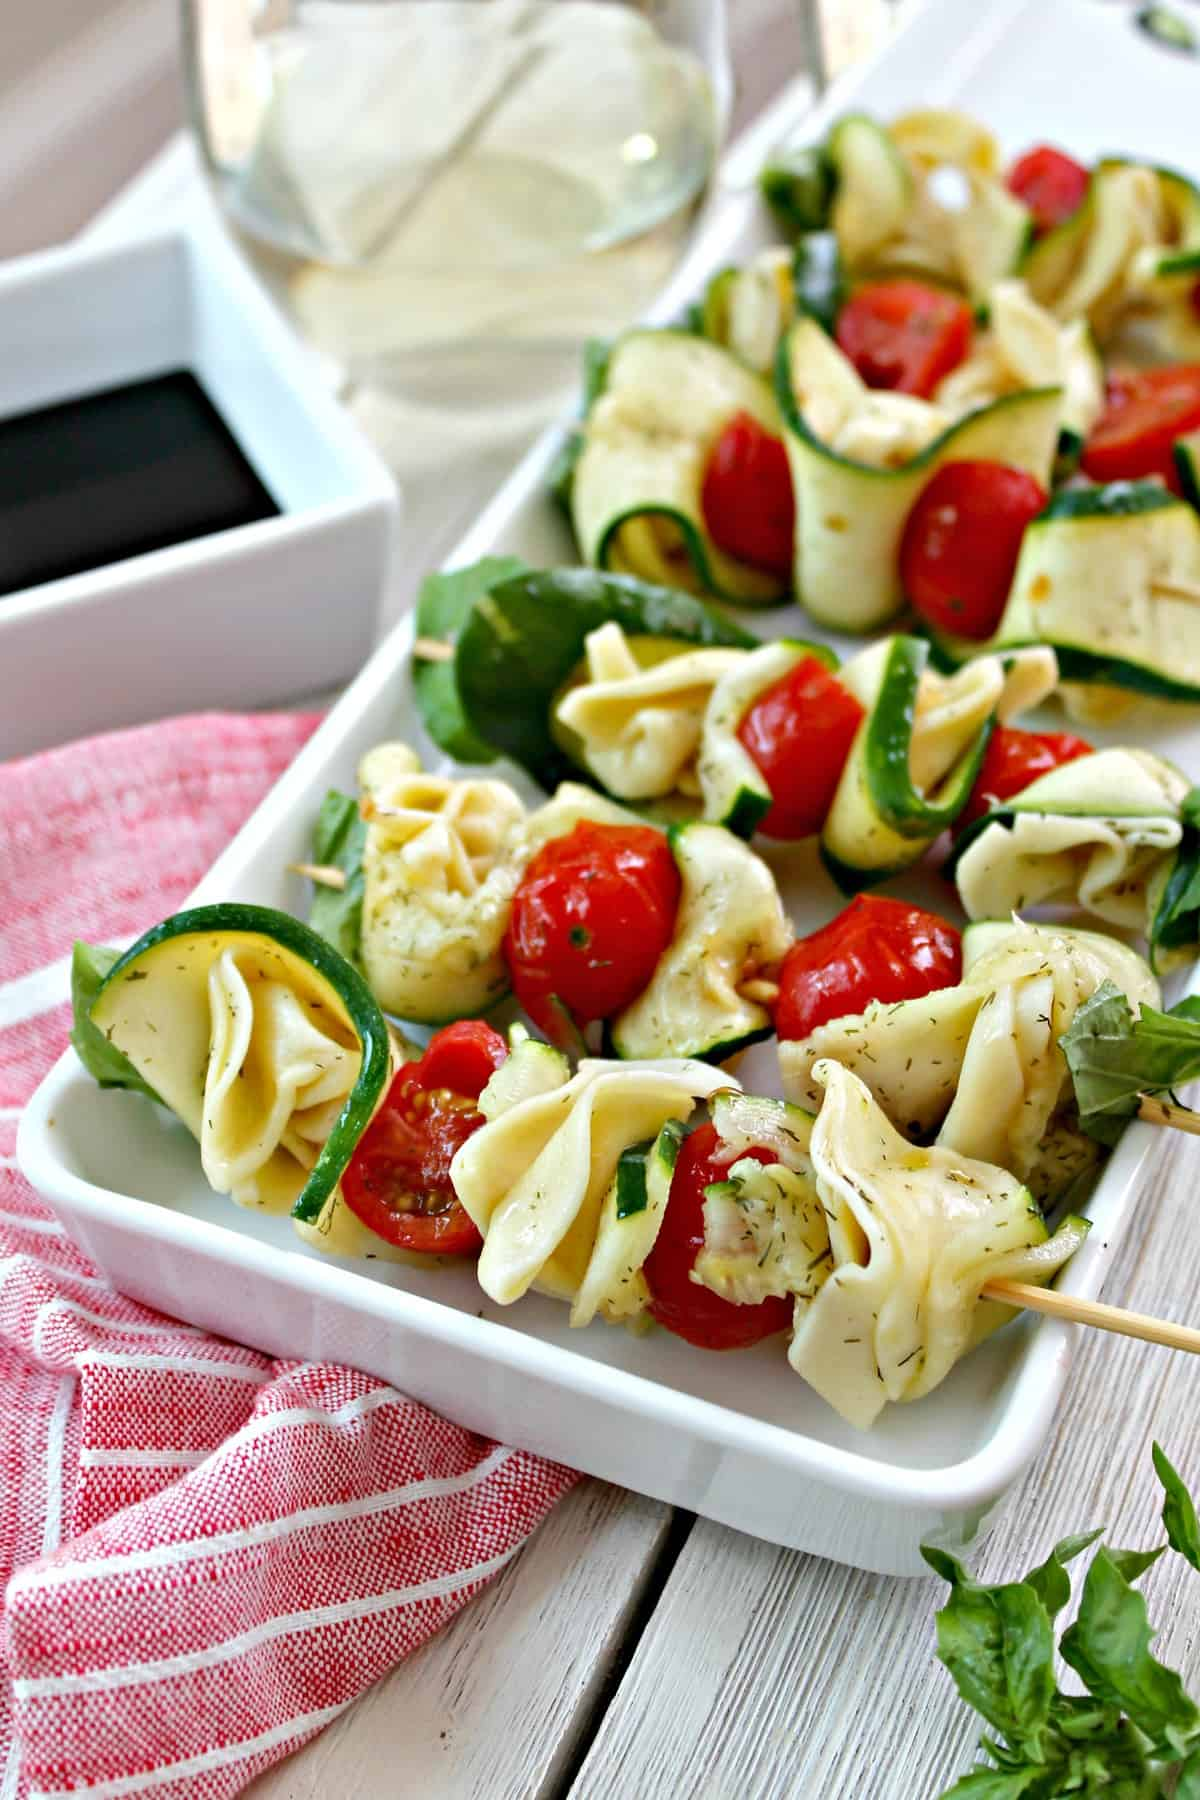 Easily make these Zucchini & Tortellini Skewers ahead of time and serve day-of for a quick and delicious party appetizer